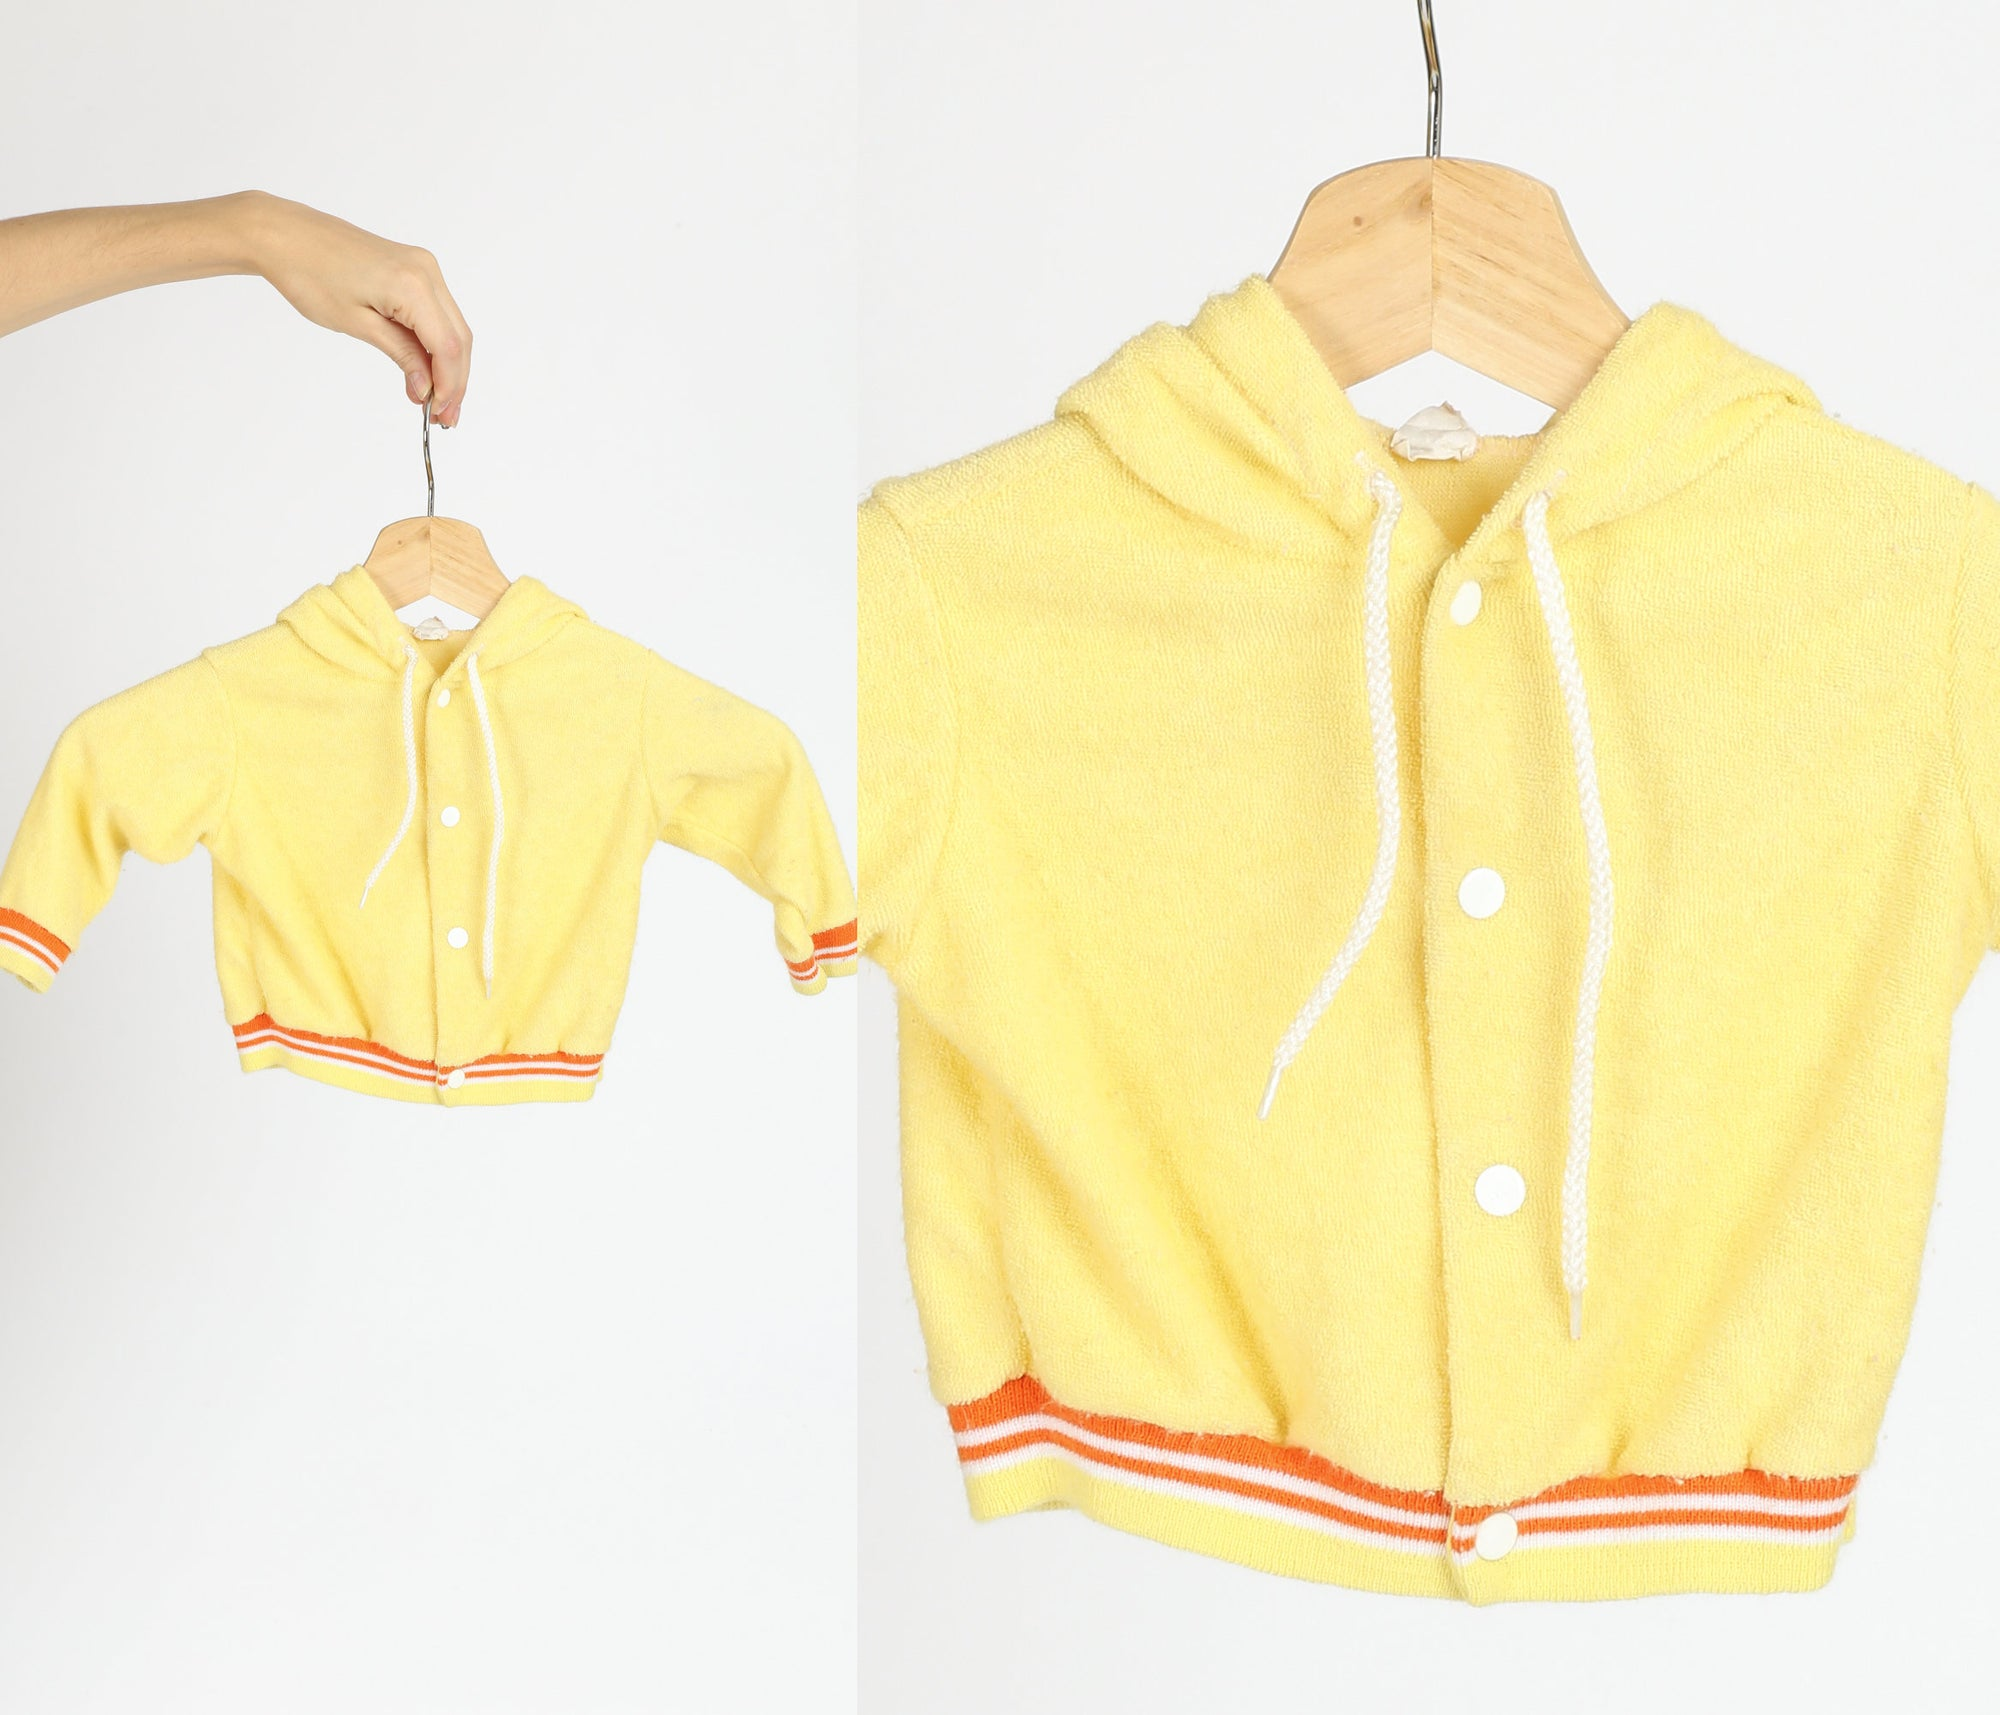 70s Toddler Terrycloth Hooded Jacket - 18 Months